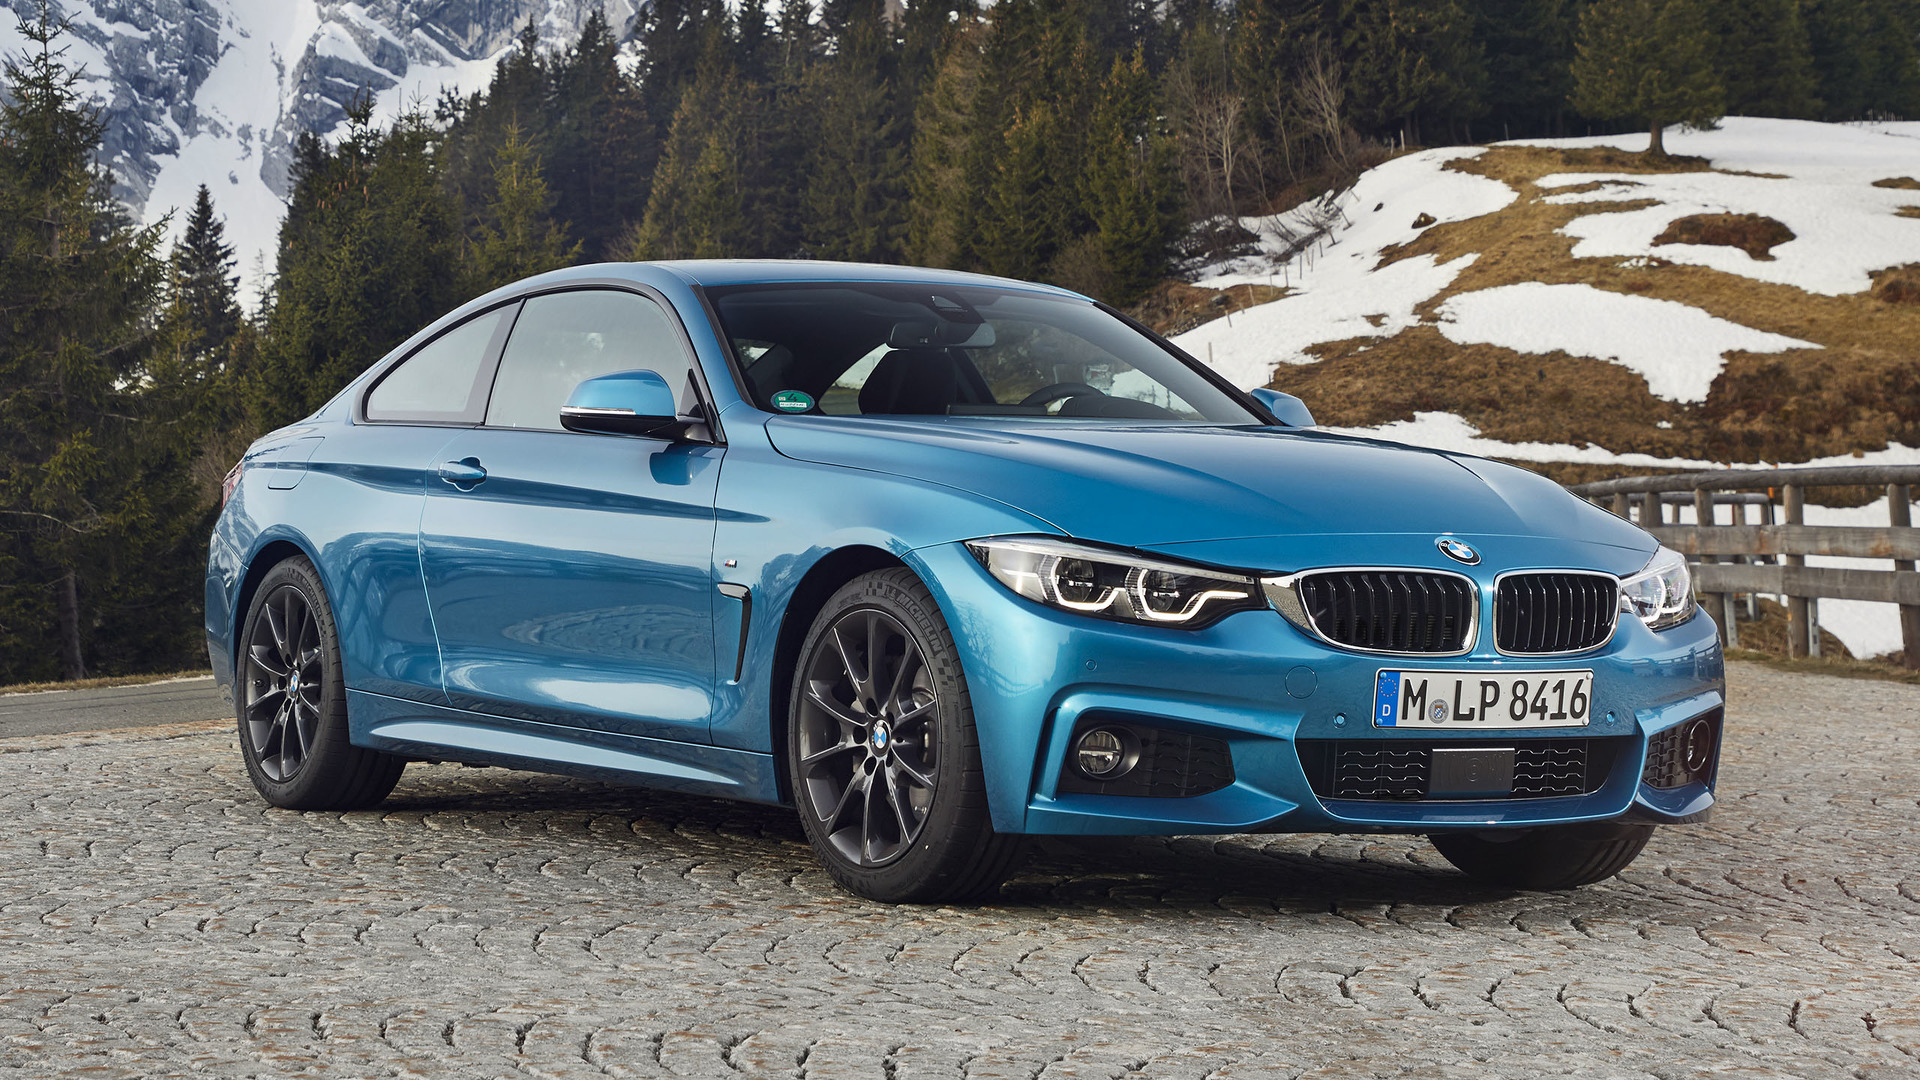 2018 bmw 440i coupe review minor updates make a positive impact. Black Bedroom Furniture Sets. Home Design Ideas